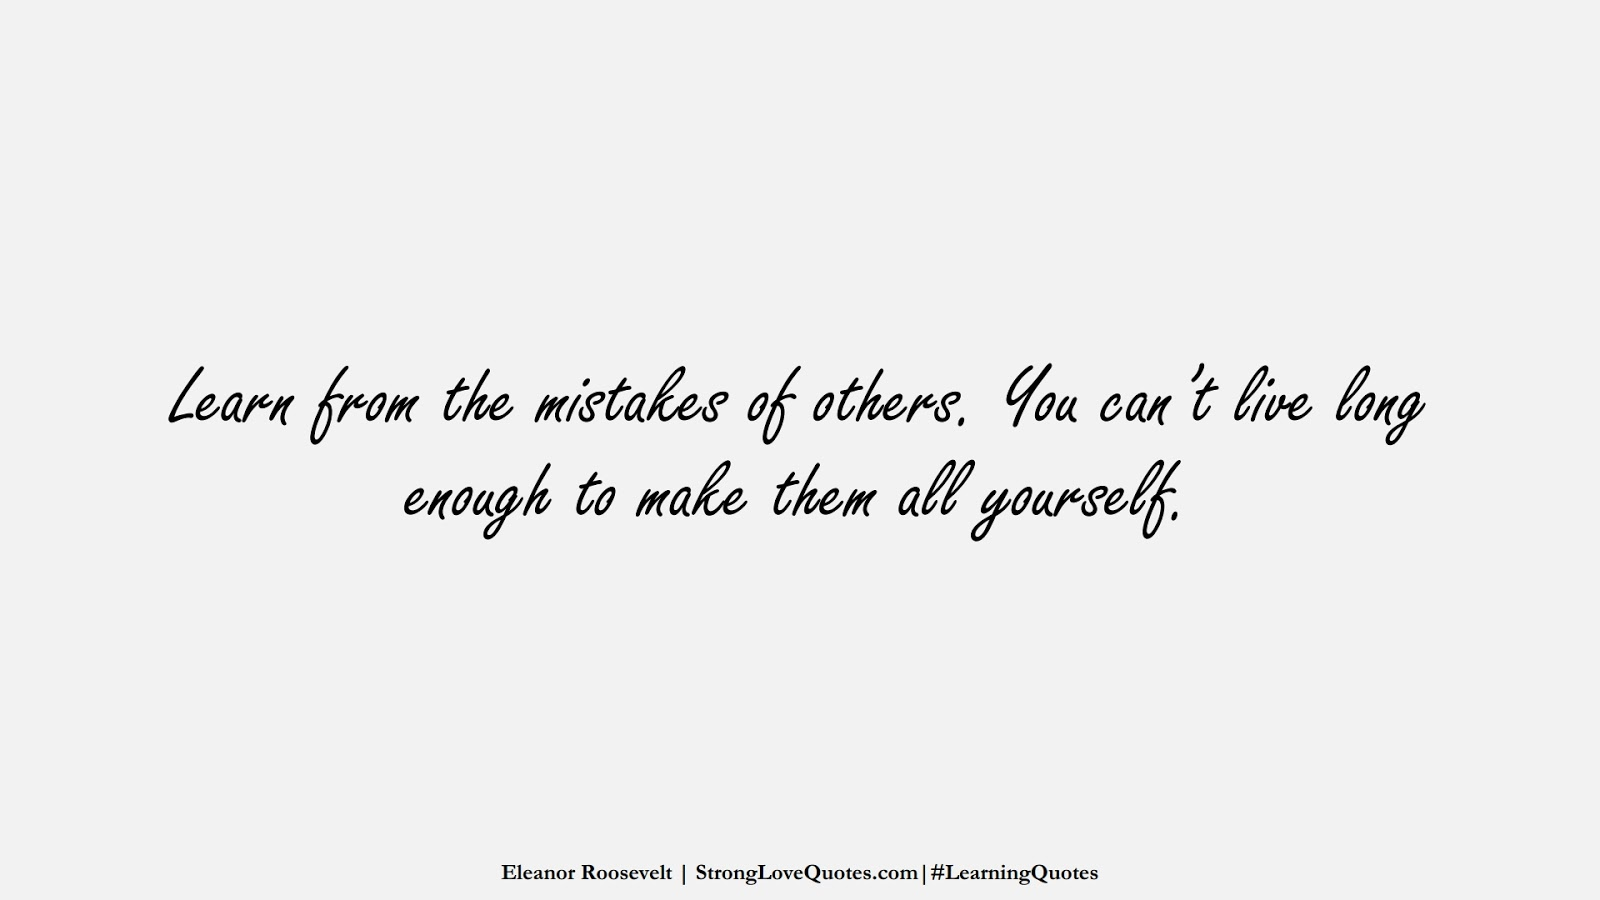 Learn from the mistakes of others. You can't live long enough to make them all yourself. (Eleanor Roosevelt);  #LearningQuotes